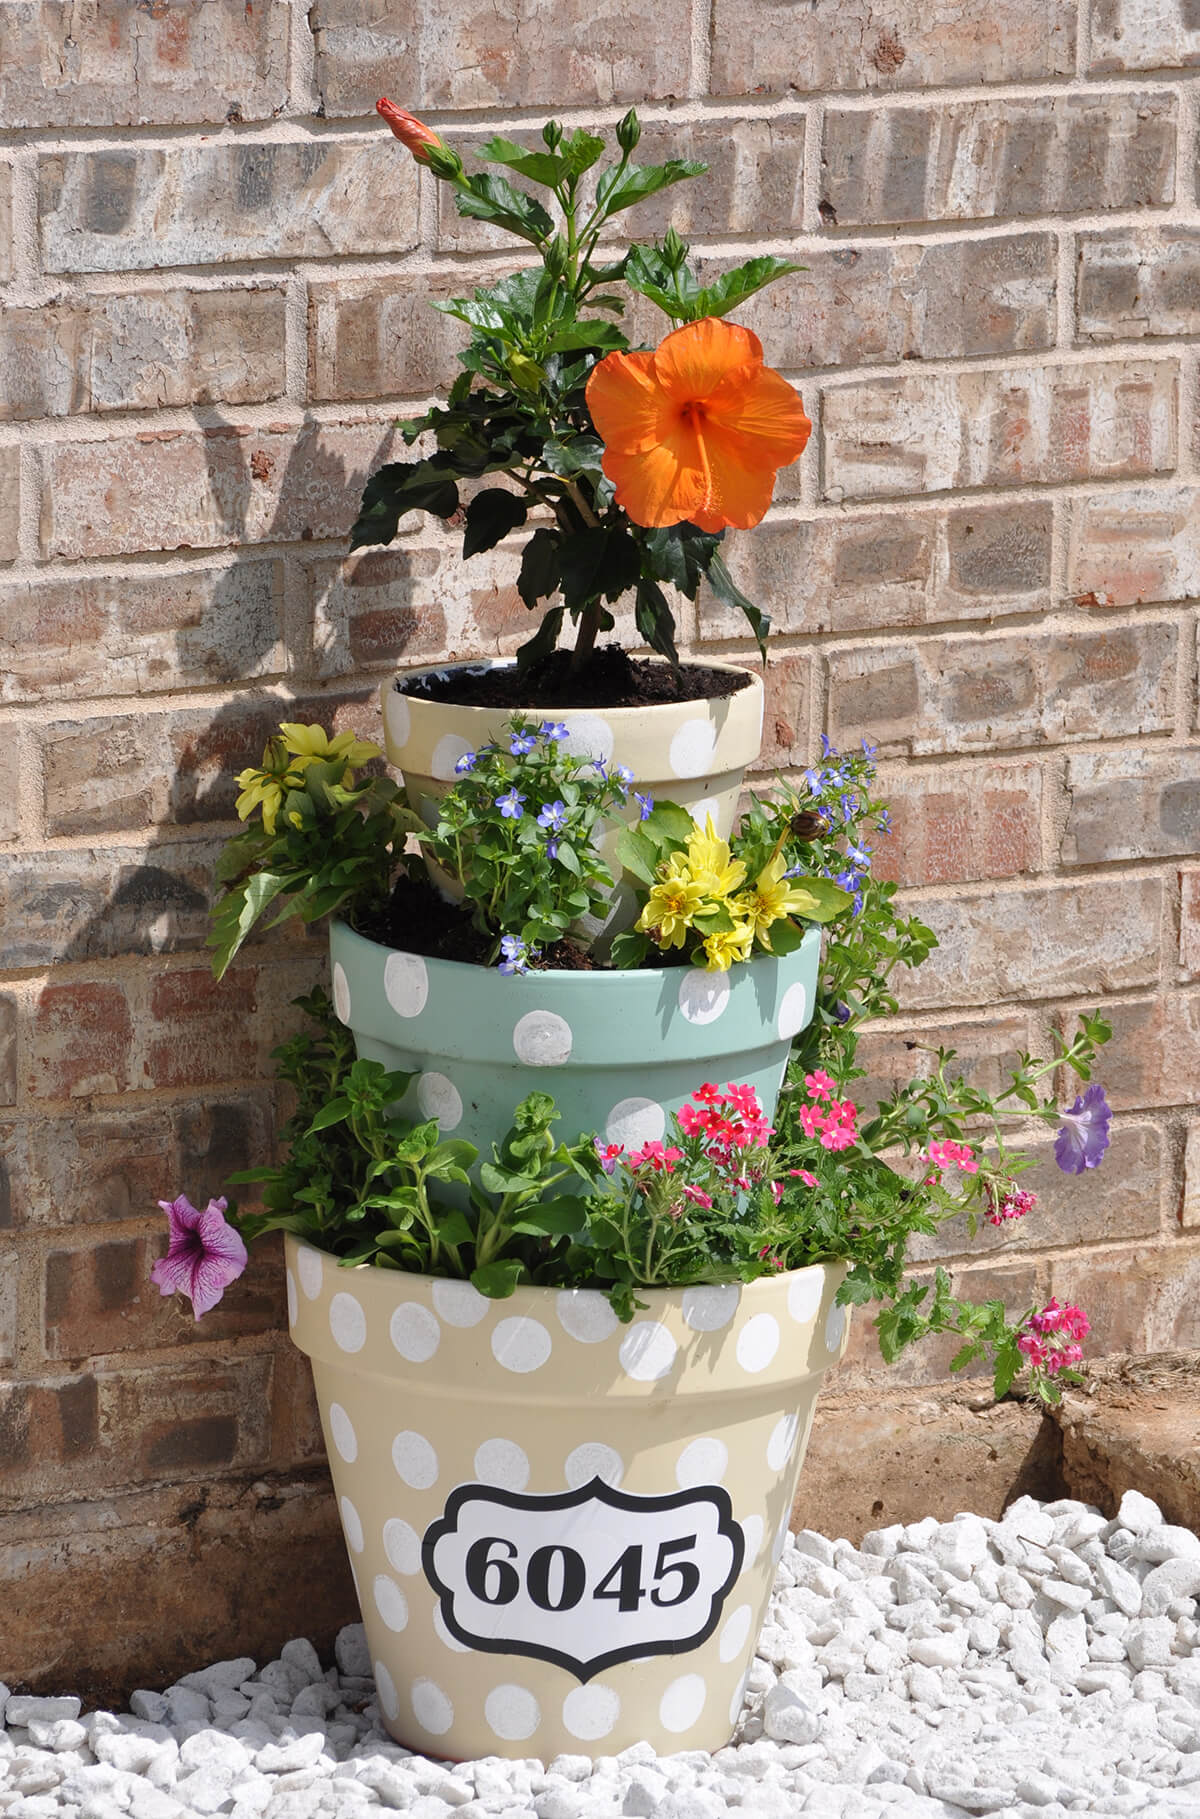 Flowers In The Wall Garden - Create a pyramid of flowers to decorate the garden idea 1